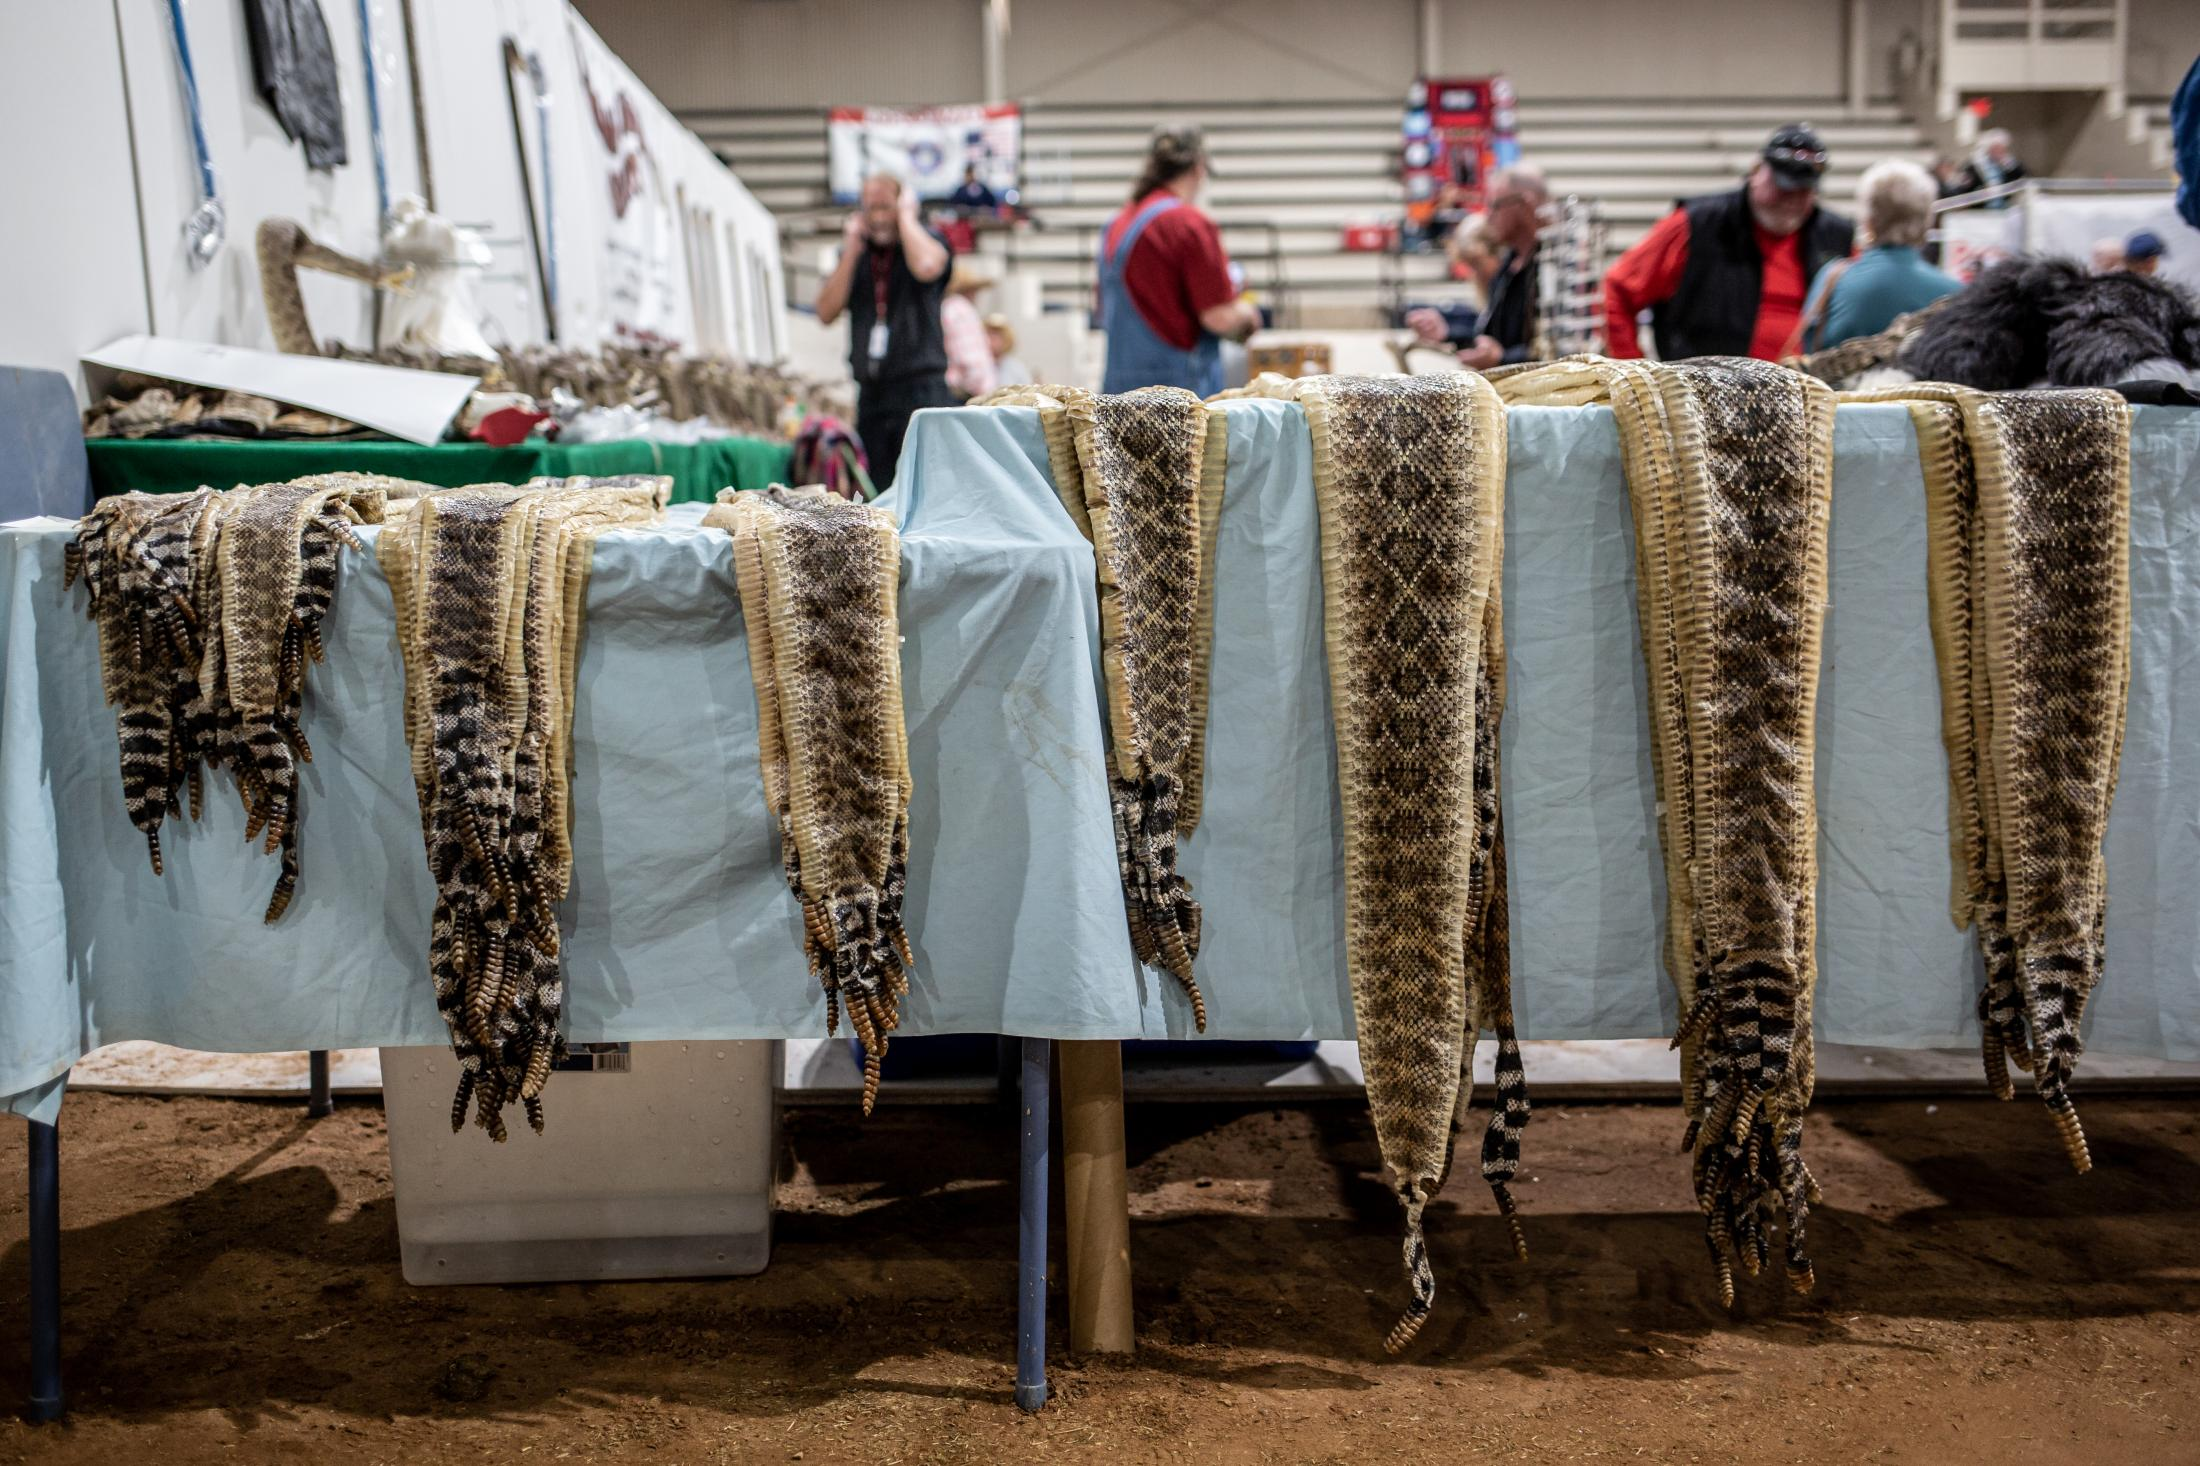 Rattlesnake skins hang down from a display table priced for sale to visitors of the Sweetwater Rattlesnake Roundup.